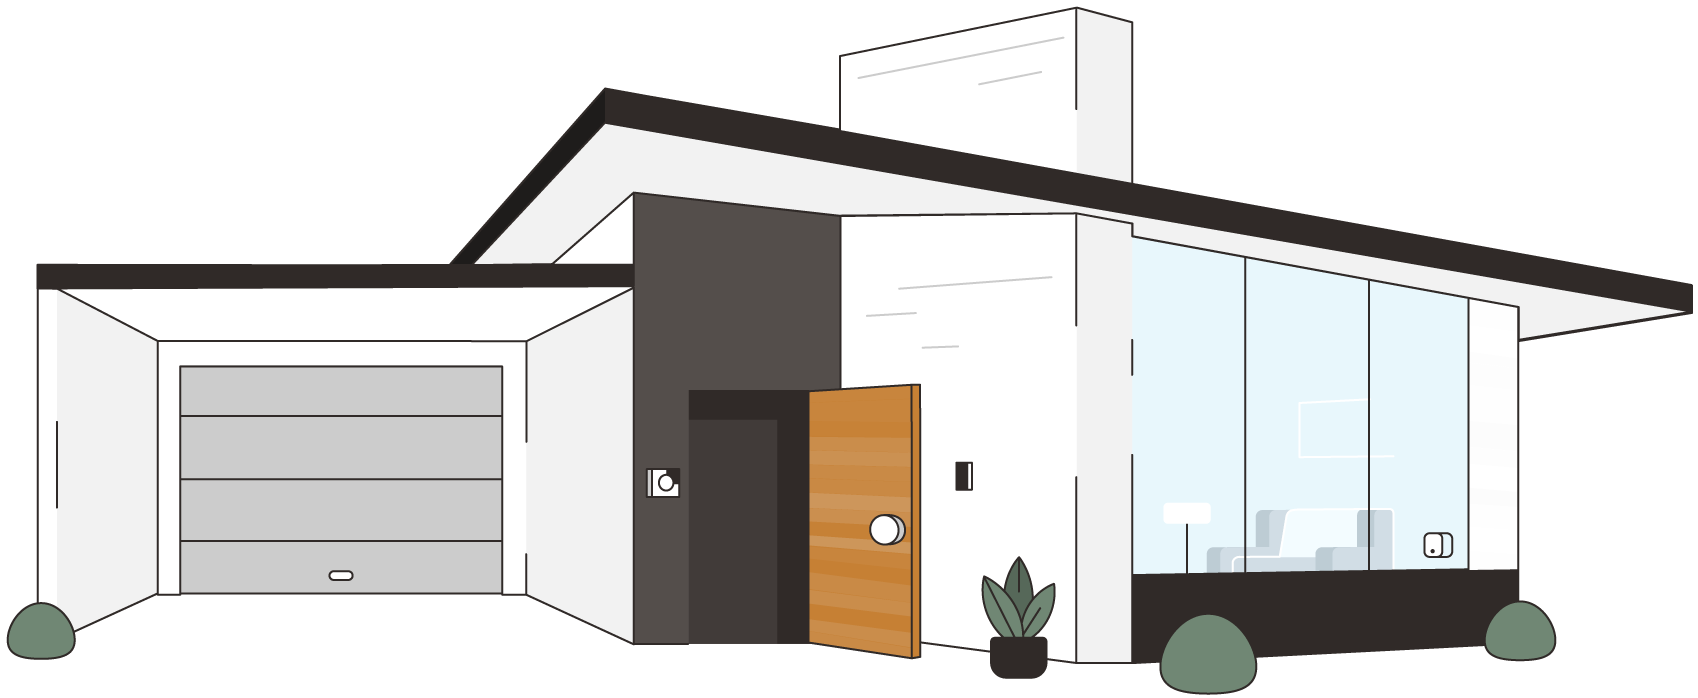 How It Works Smart Home Access Solutions August